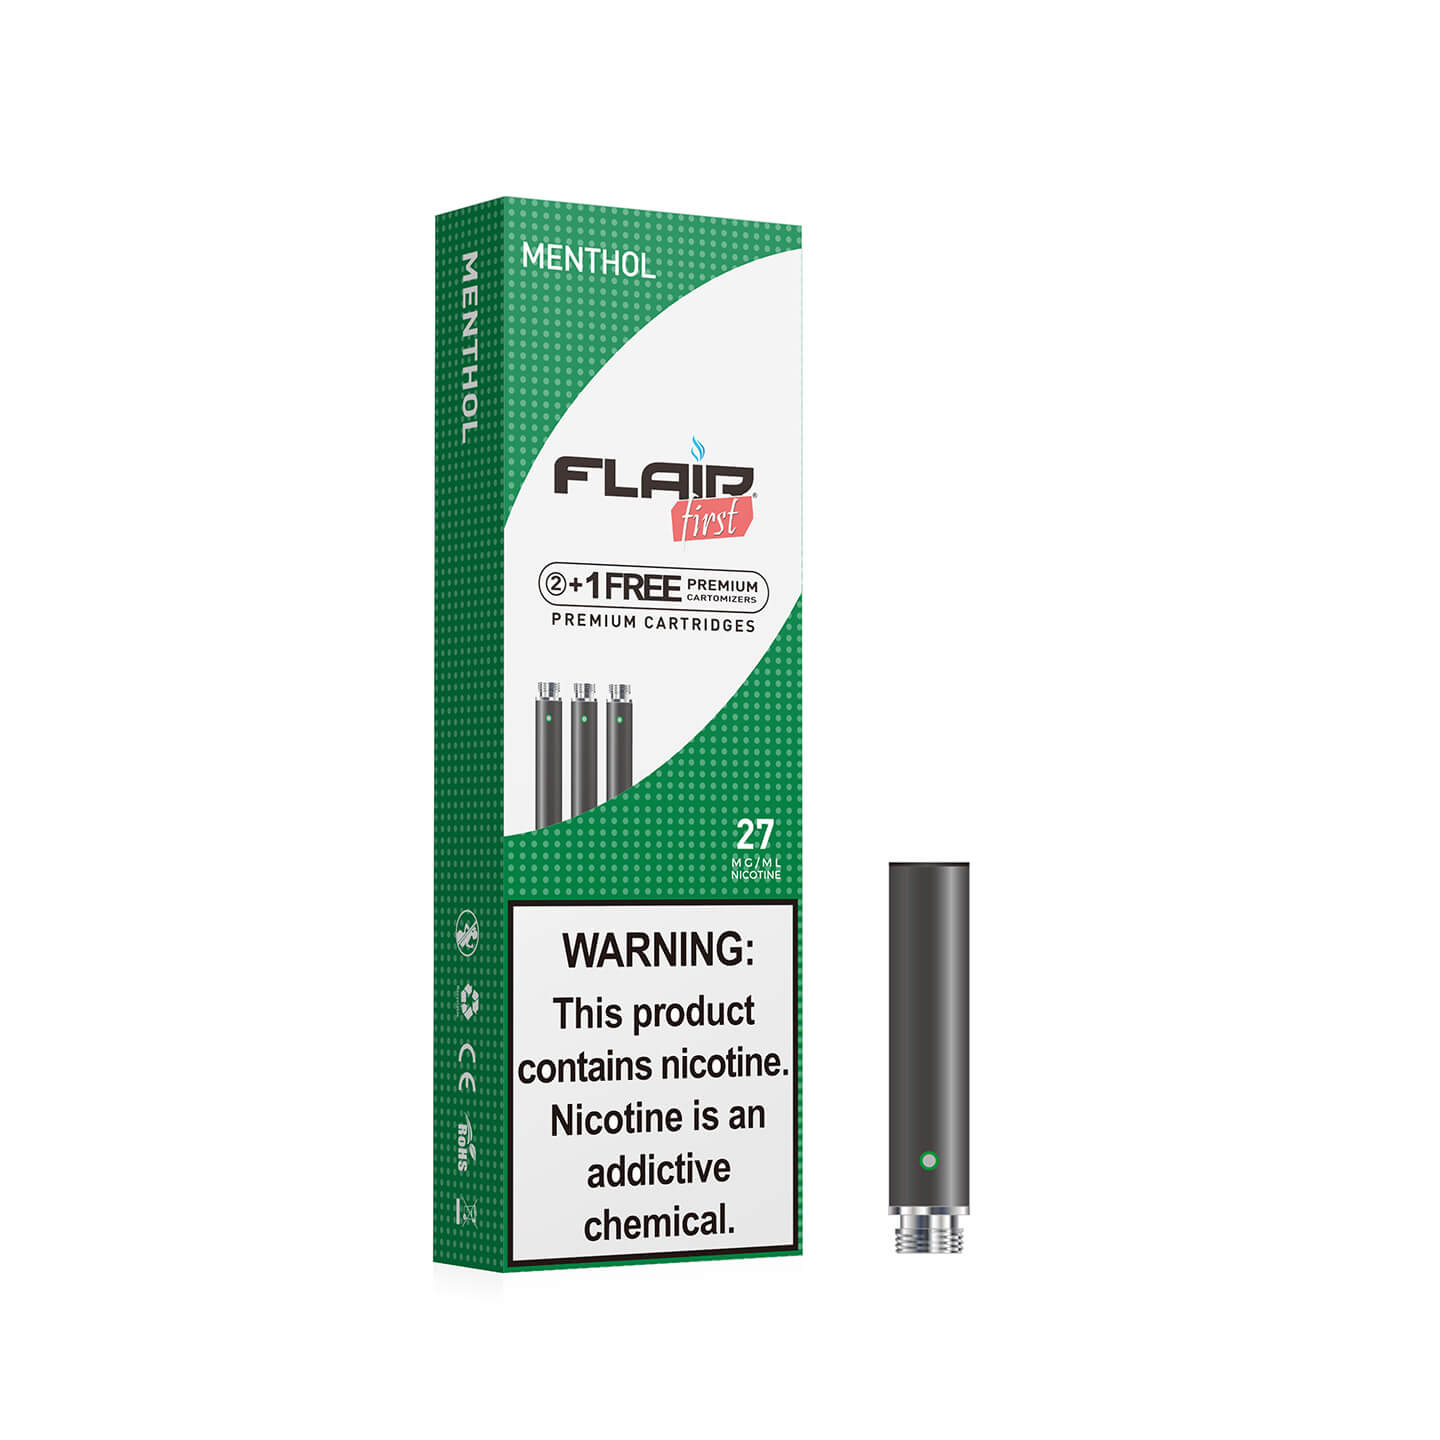 Main image of Flair E-cig Refills - Cartomizers (27 Mg Menthol)